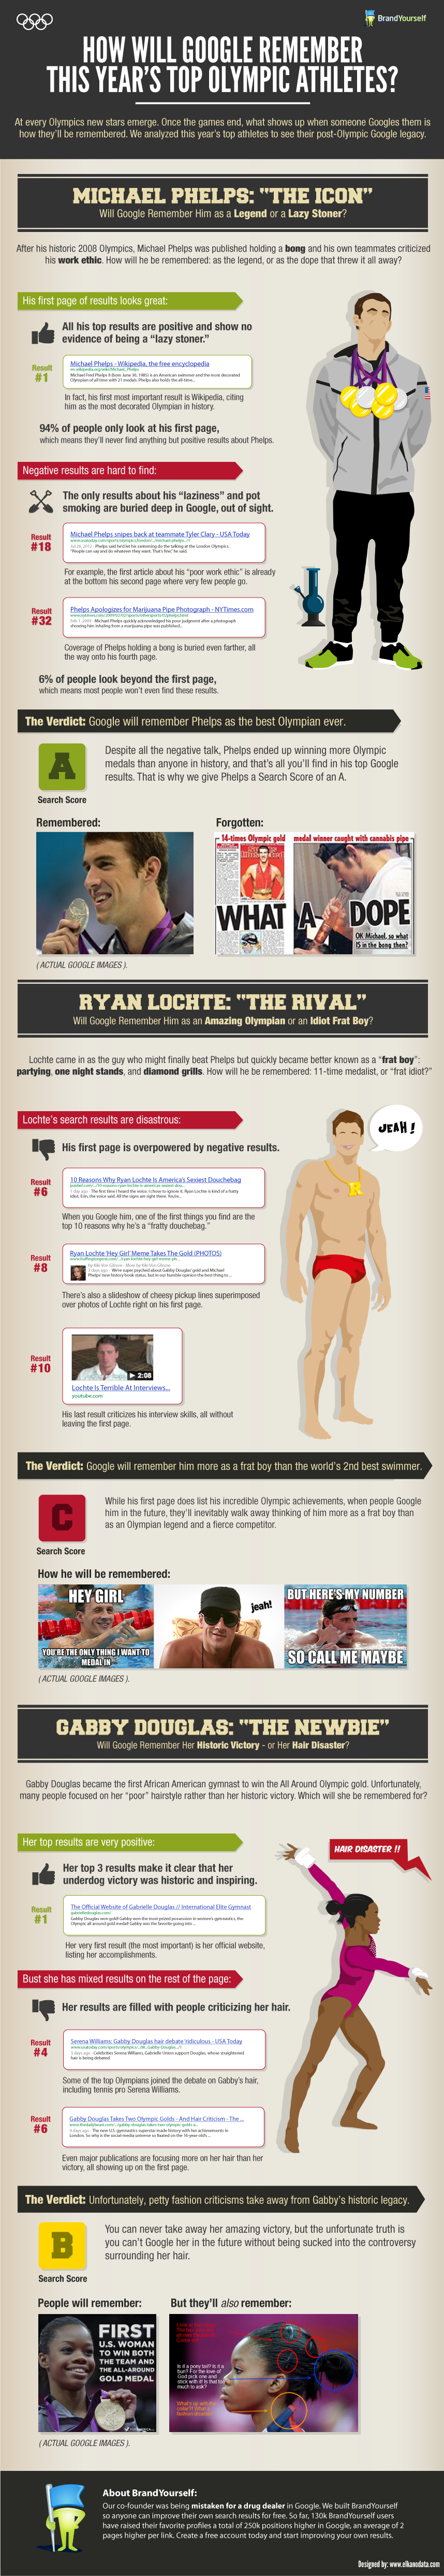 BrandYourself-Olympic-Infographic-Final-2